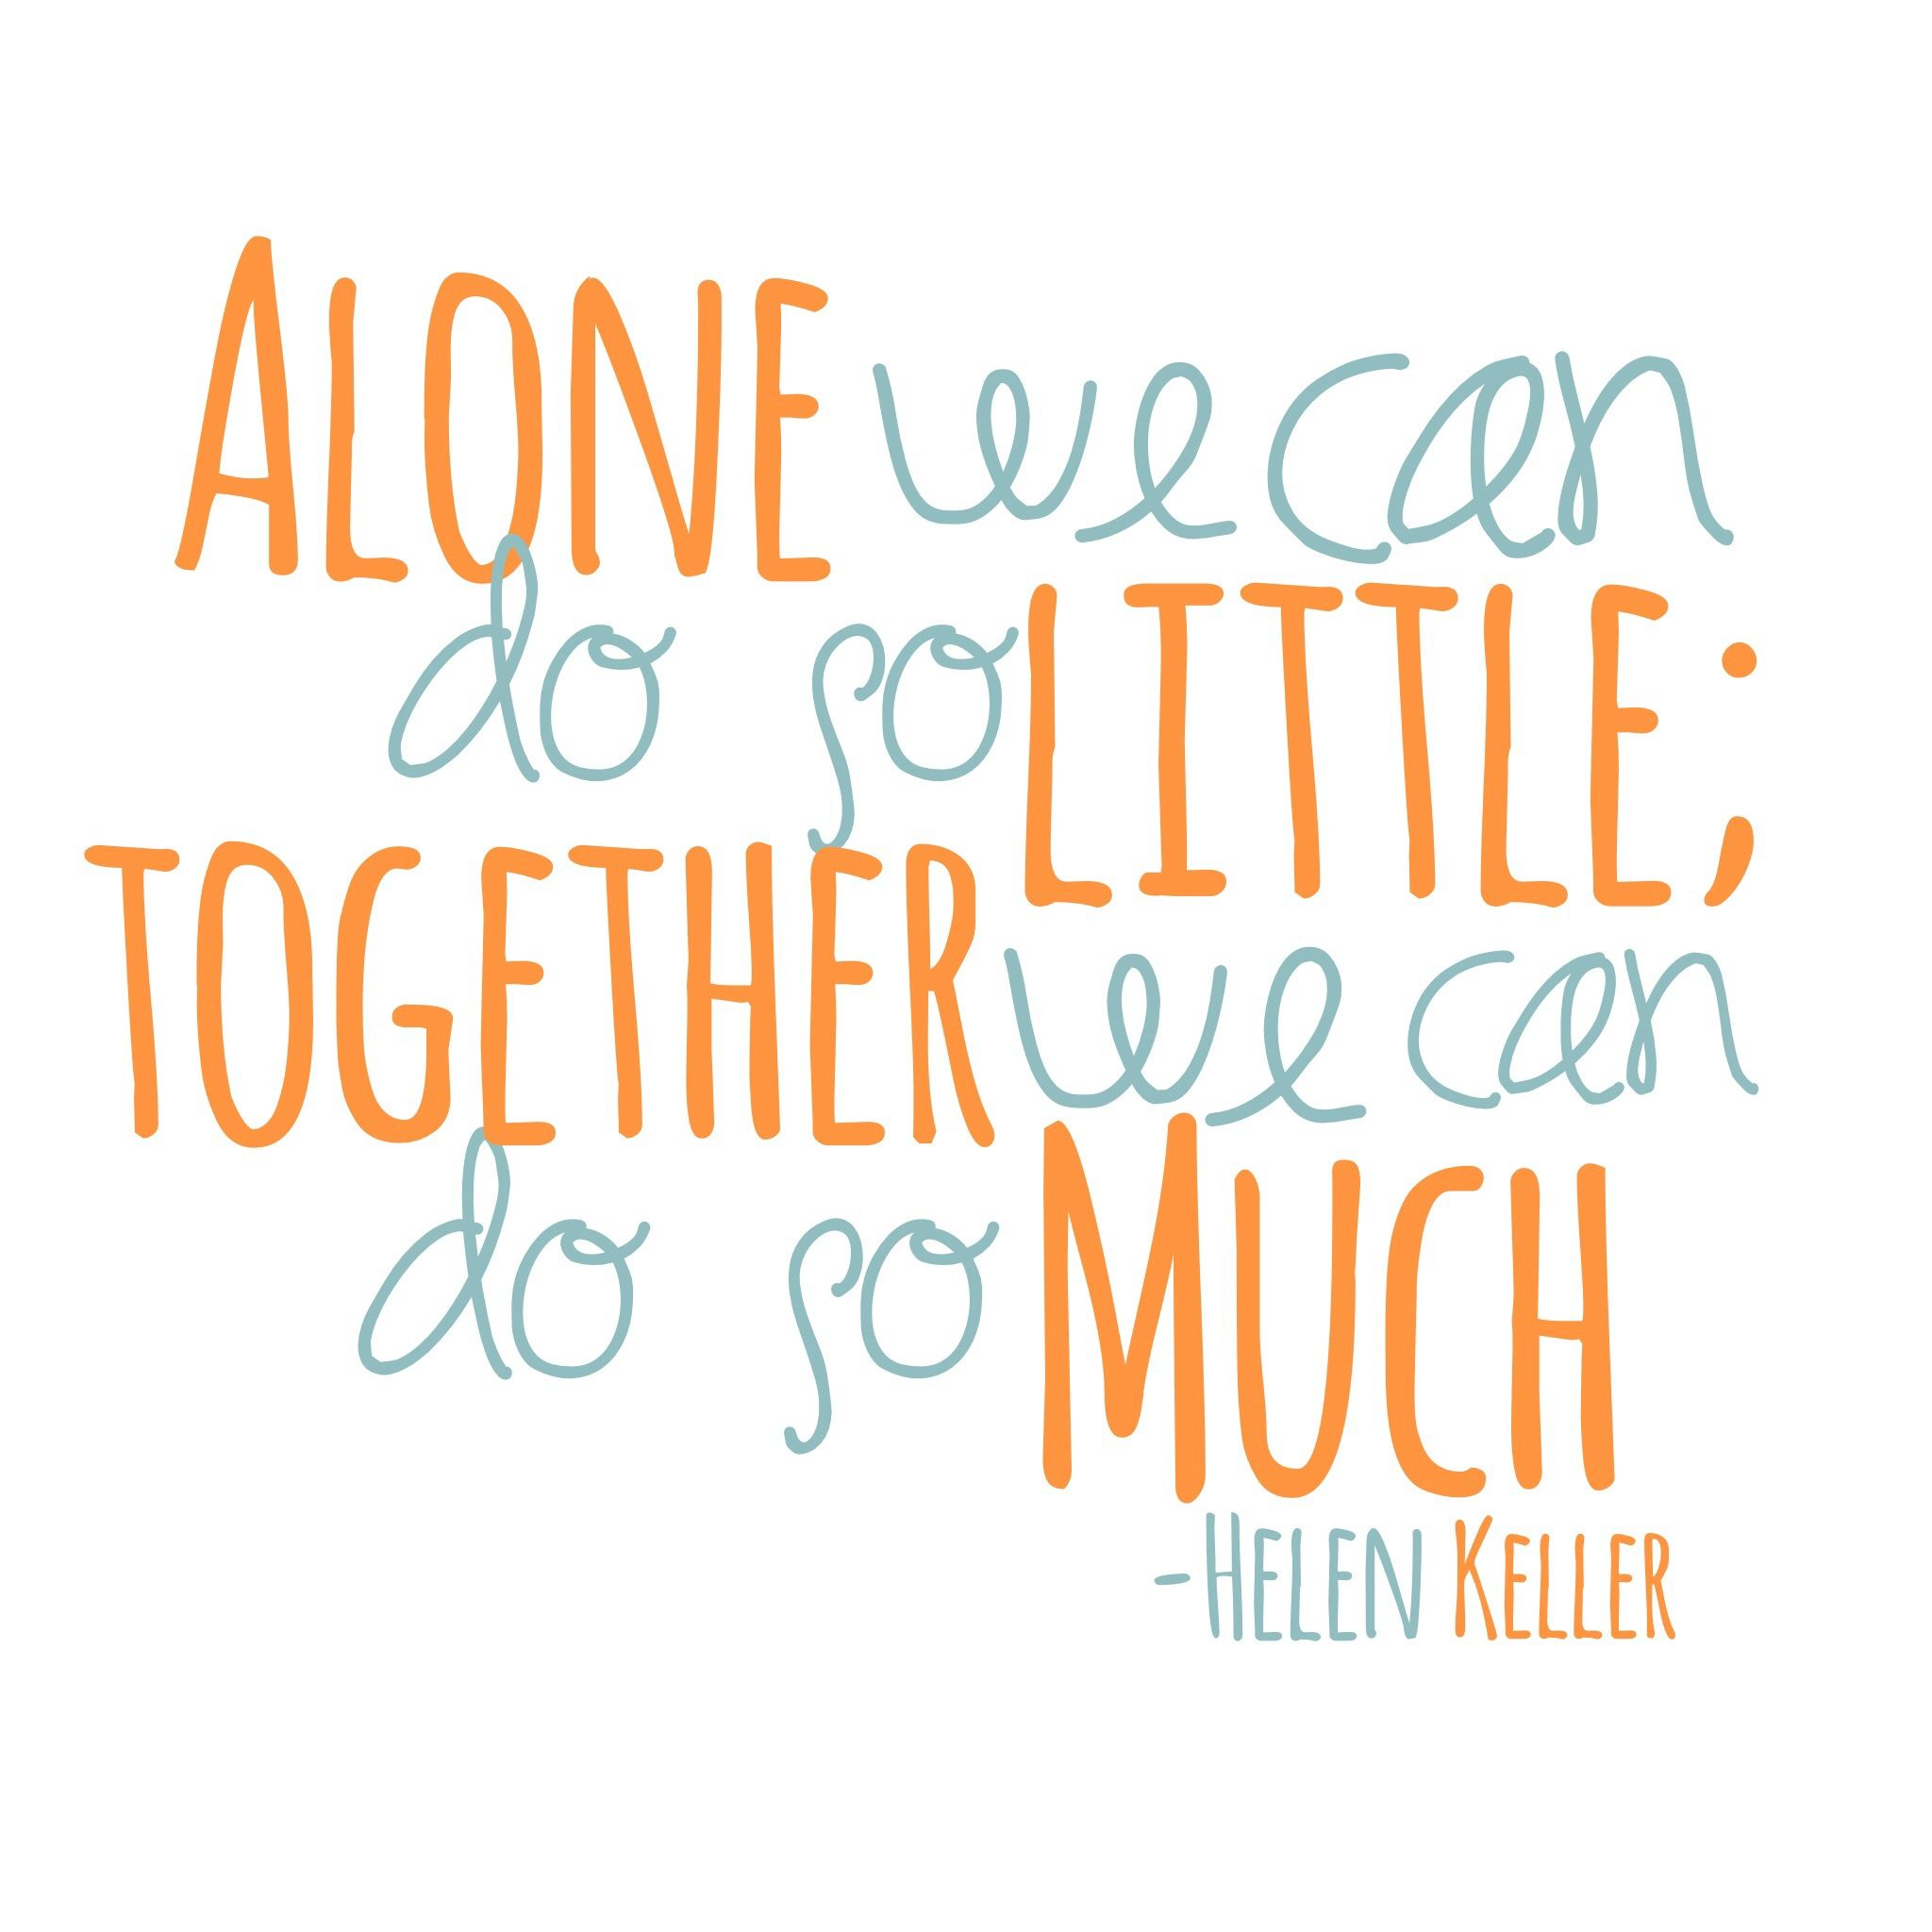 Classroom Decor,Teacher Prints,Inspirational Quotes,Alone We Can Do So Little,Together We Can Do So Much,Printable Wall Art,Digital Download